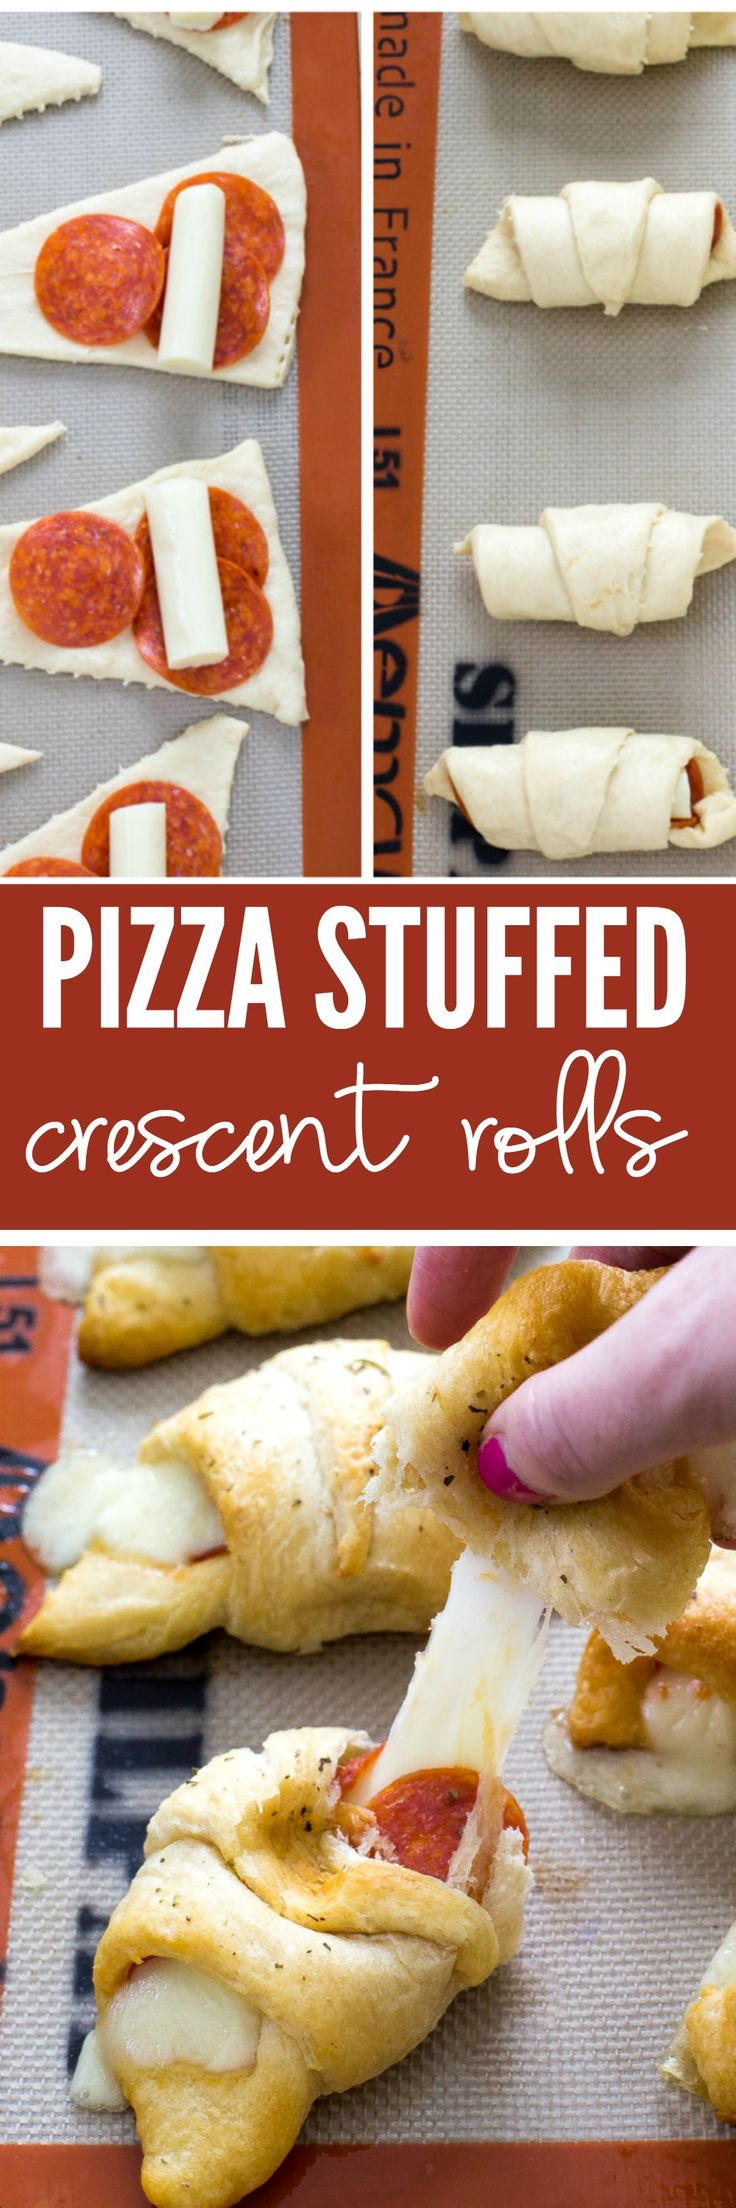 Pizza Stuffed Crescent Rolls loaded with gooey mozzarella cheese and pepperoni. Serve with warm marinara for dipping!